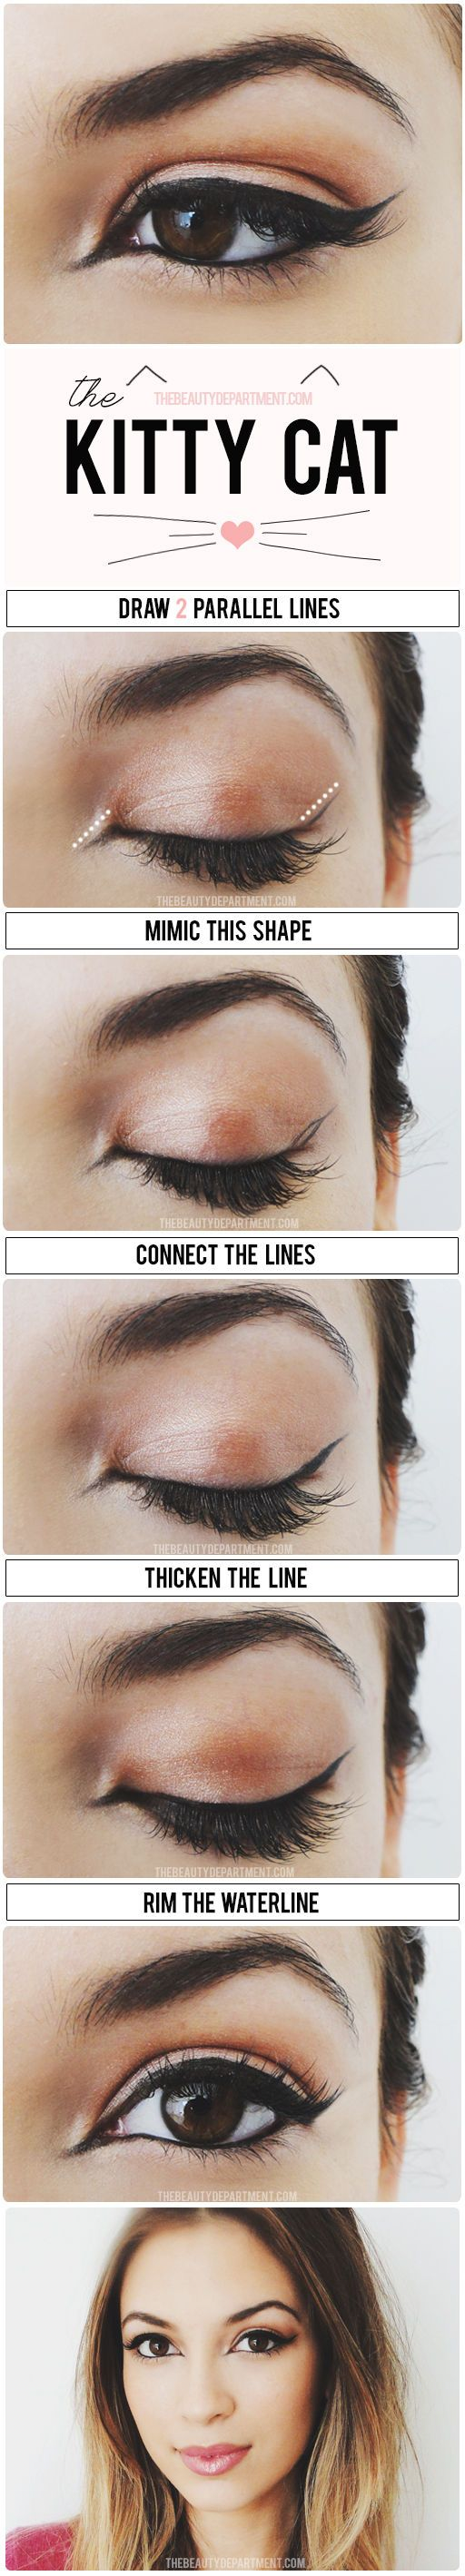 the kitty cat eye #diy #makeup #beauty #cateye http://thebeautydepartment.com/2014/02/the-cat-eye-stylized/